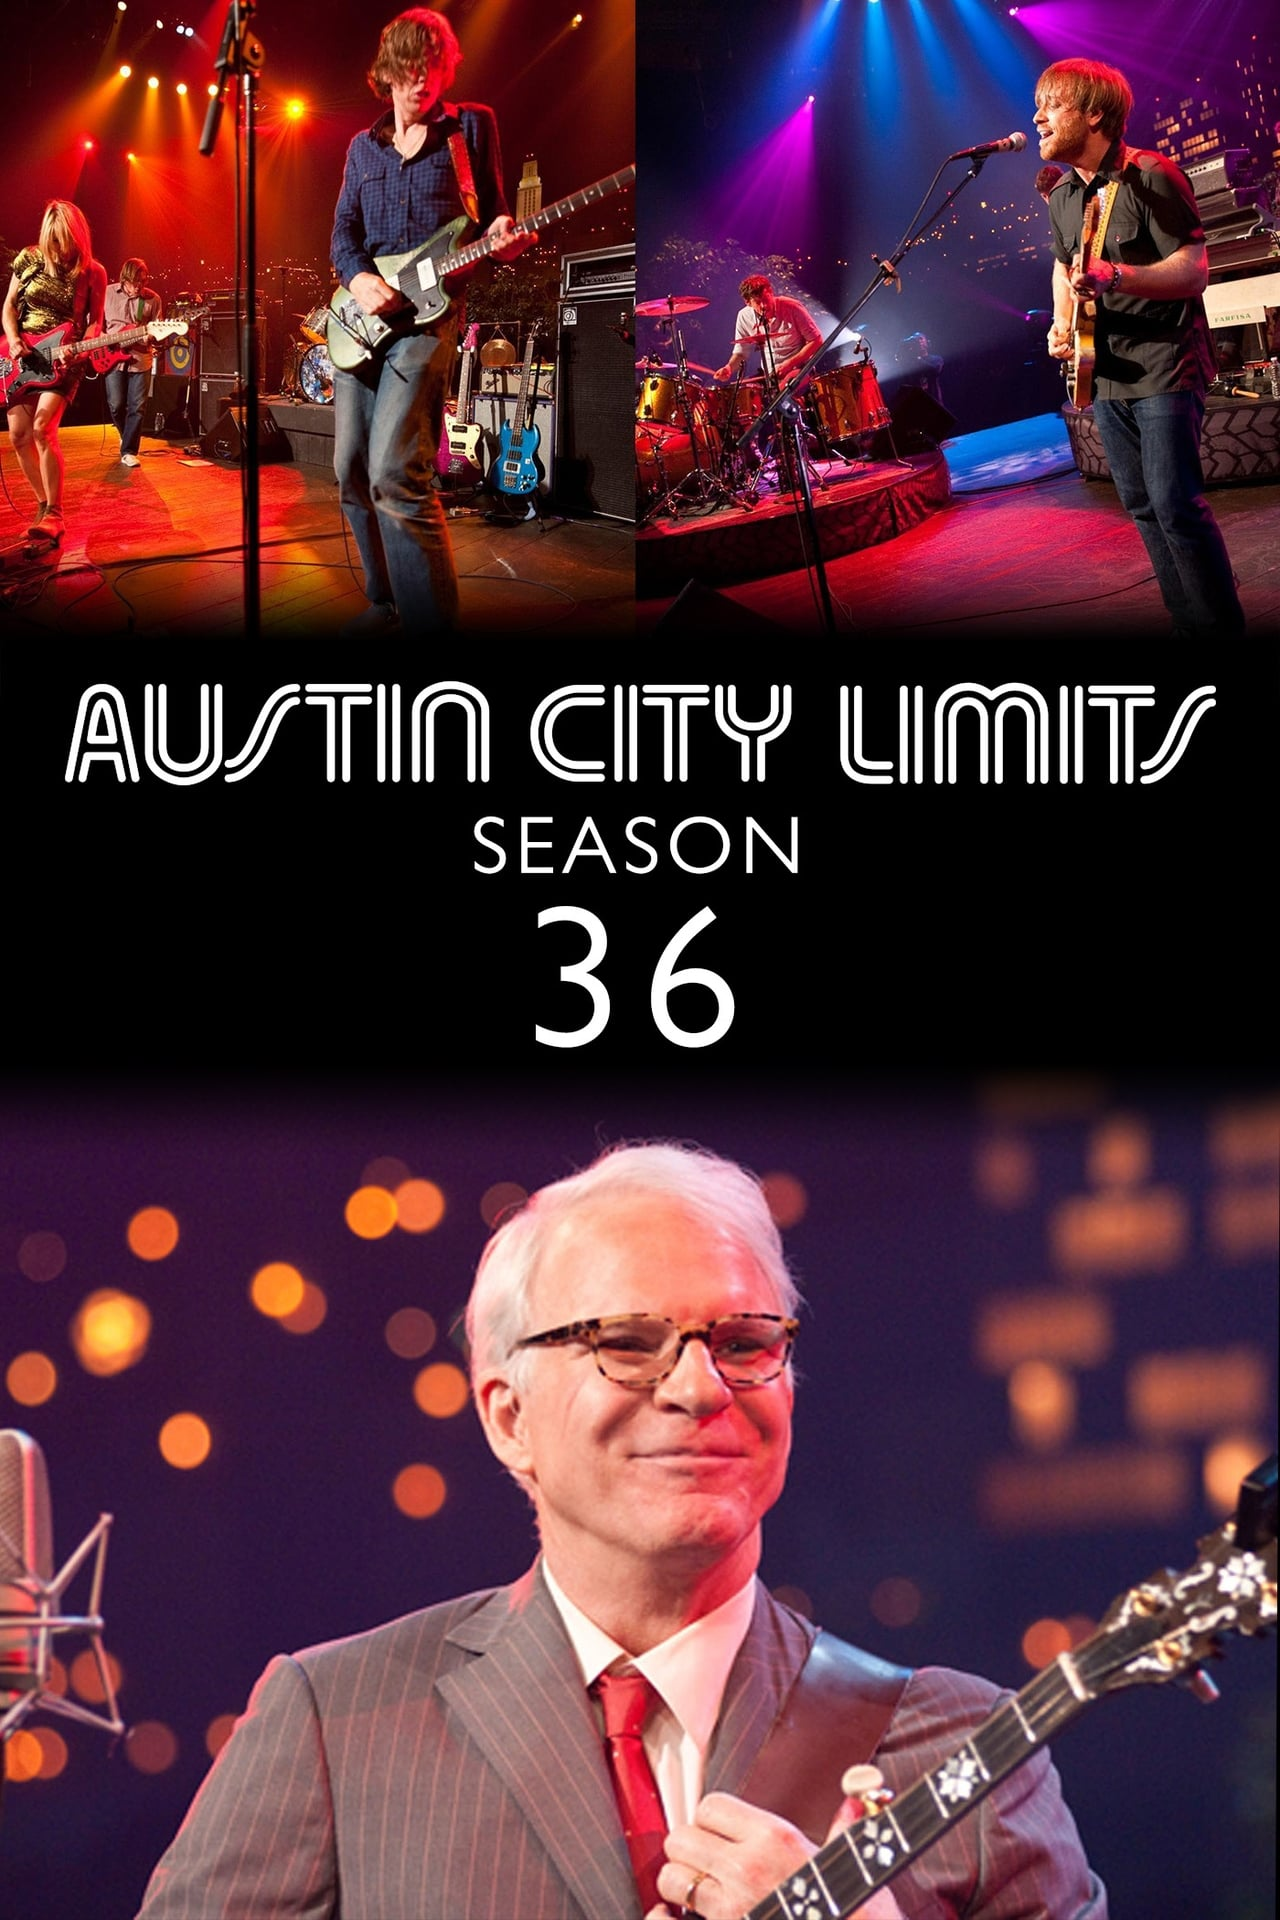 Putlocker Austin City Limits Season 36 (2010)